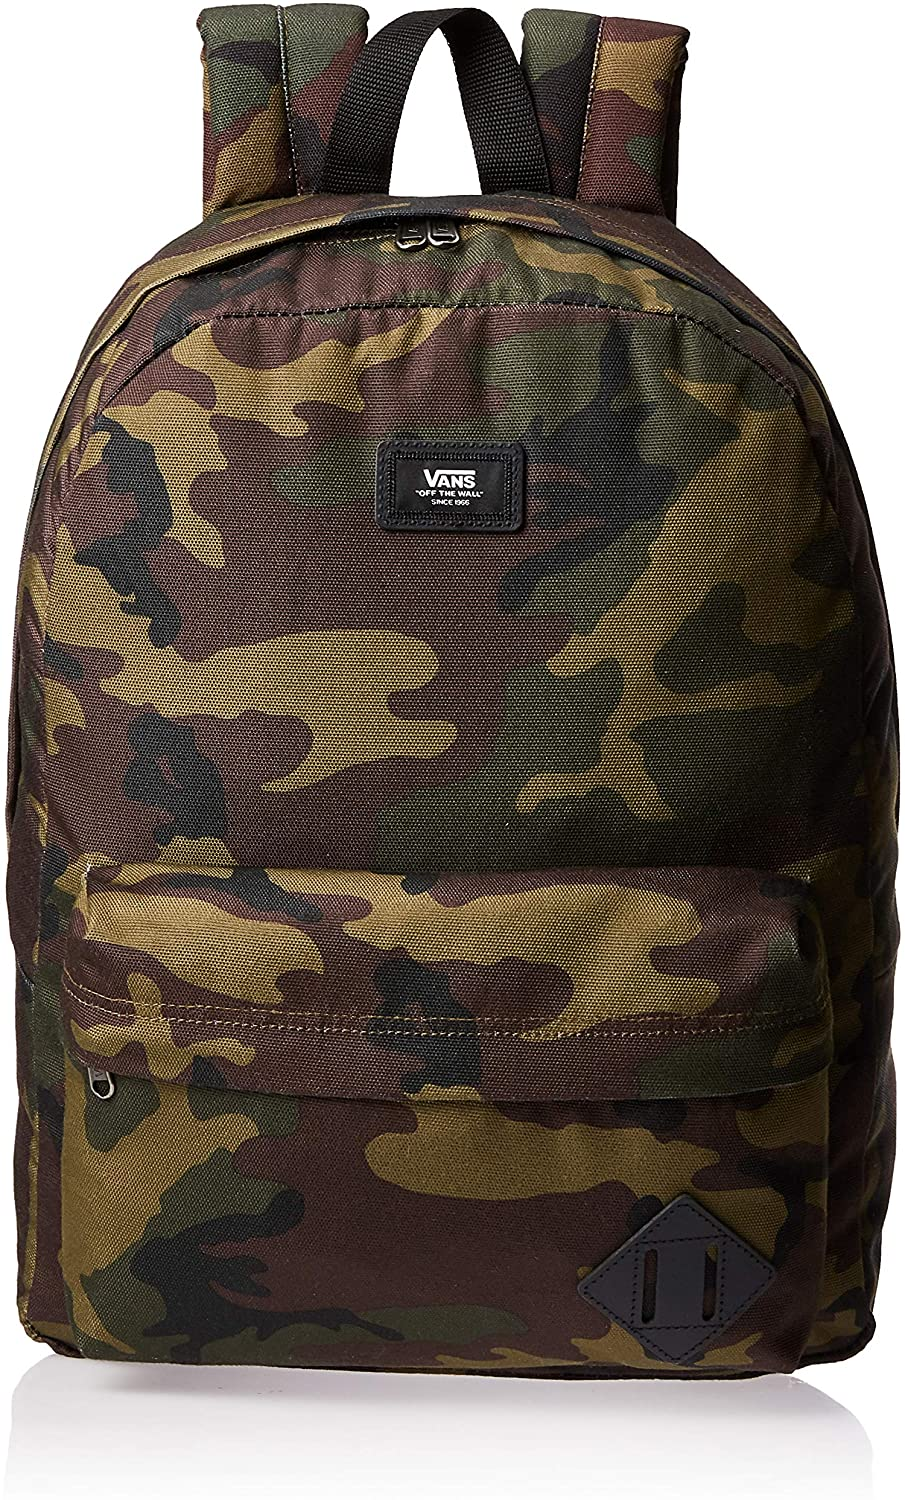 Vans Old Skool III Backpack Classic Camo/Black VN0A3I6R97I